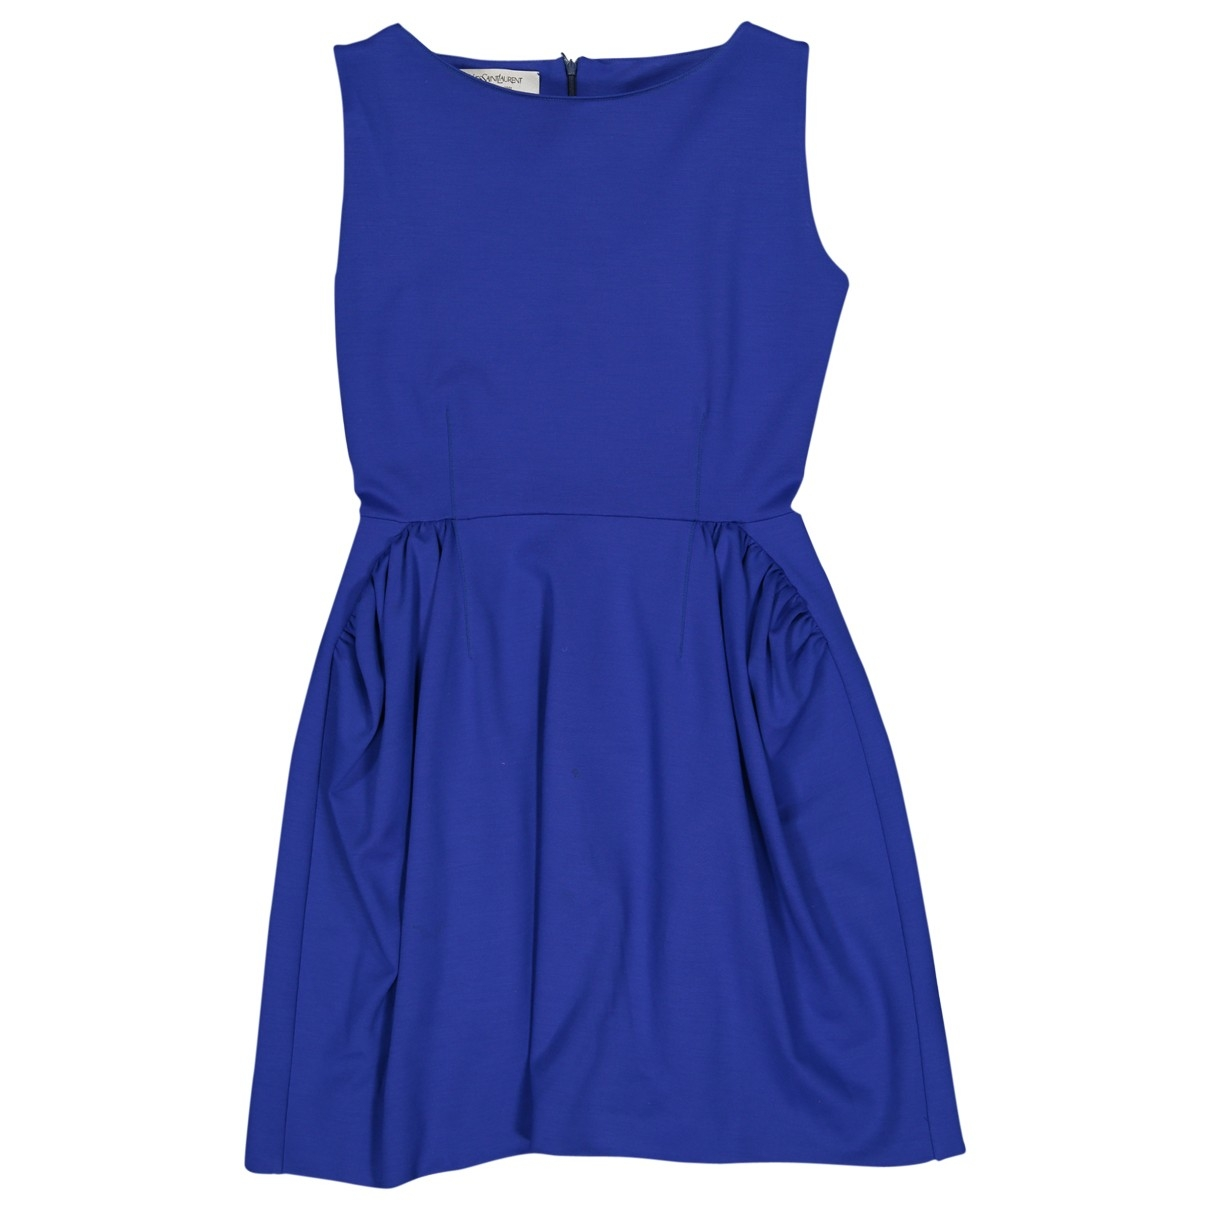 Yves Saint Laurent \N Kleid in  Blau Wolle